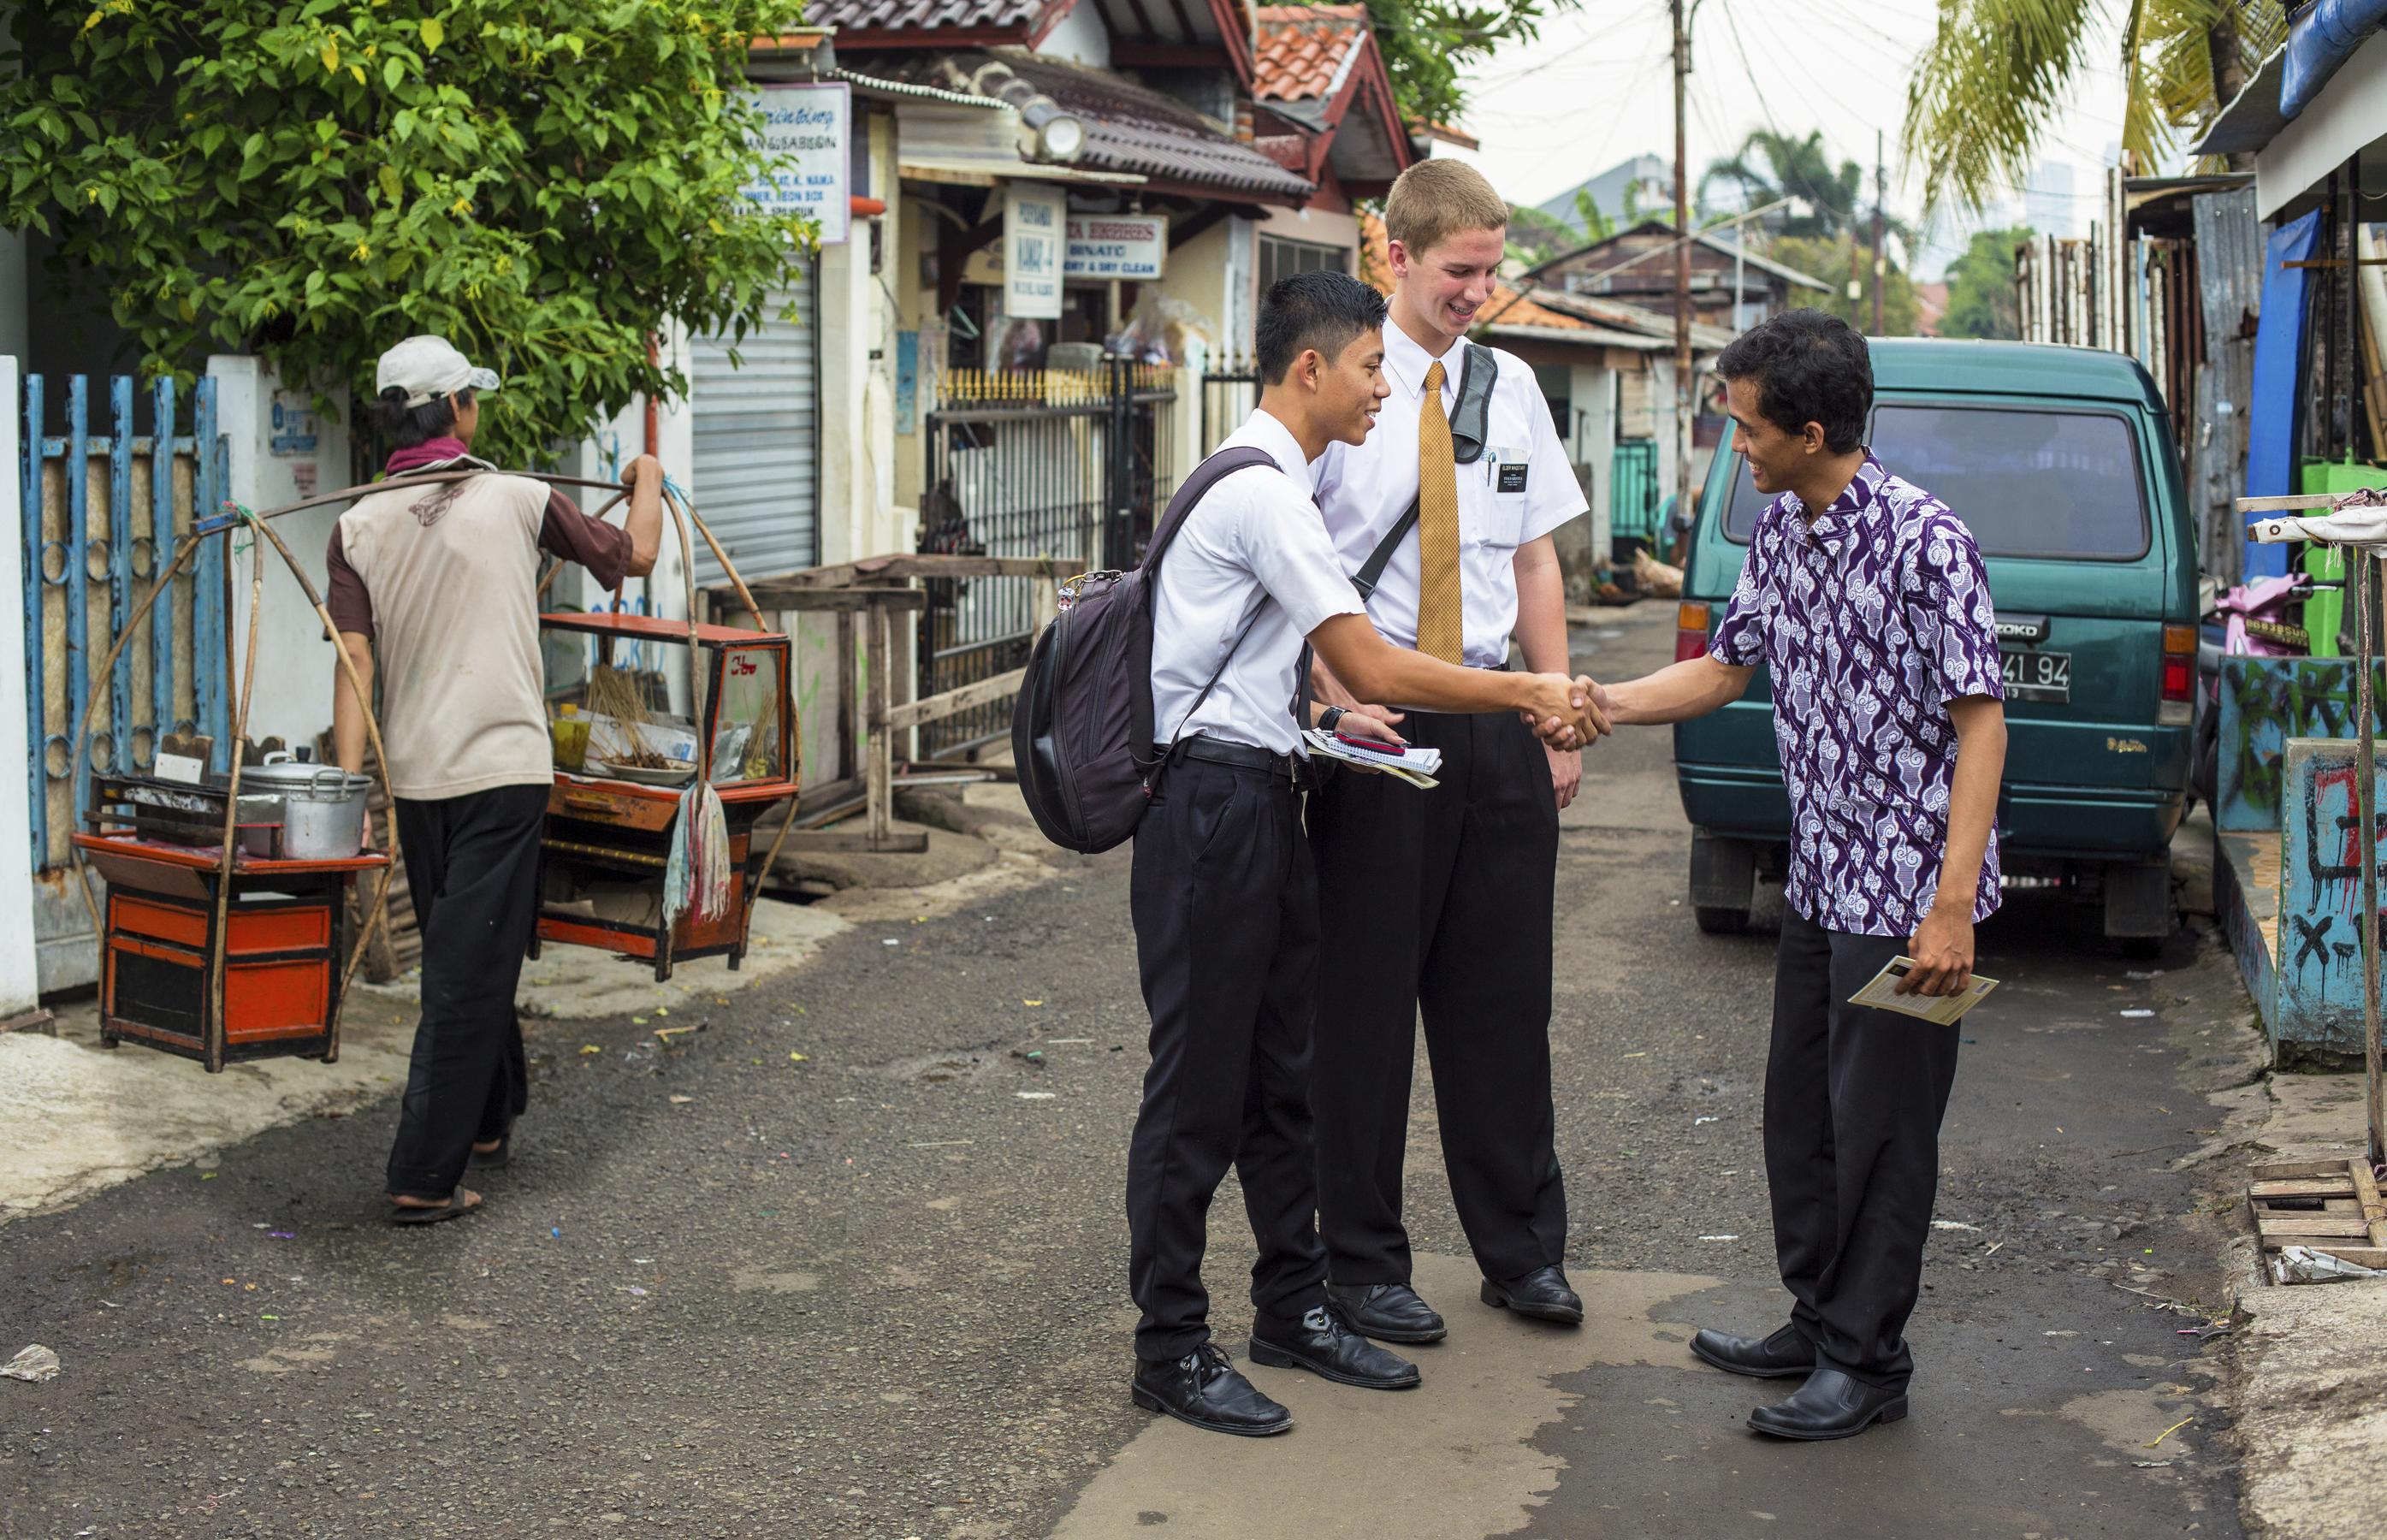 missionaries in Indonesia